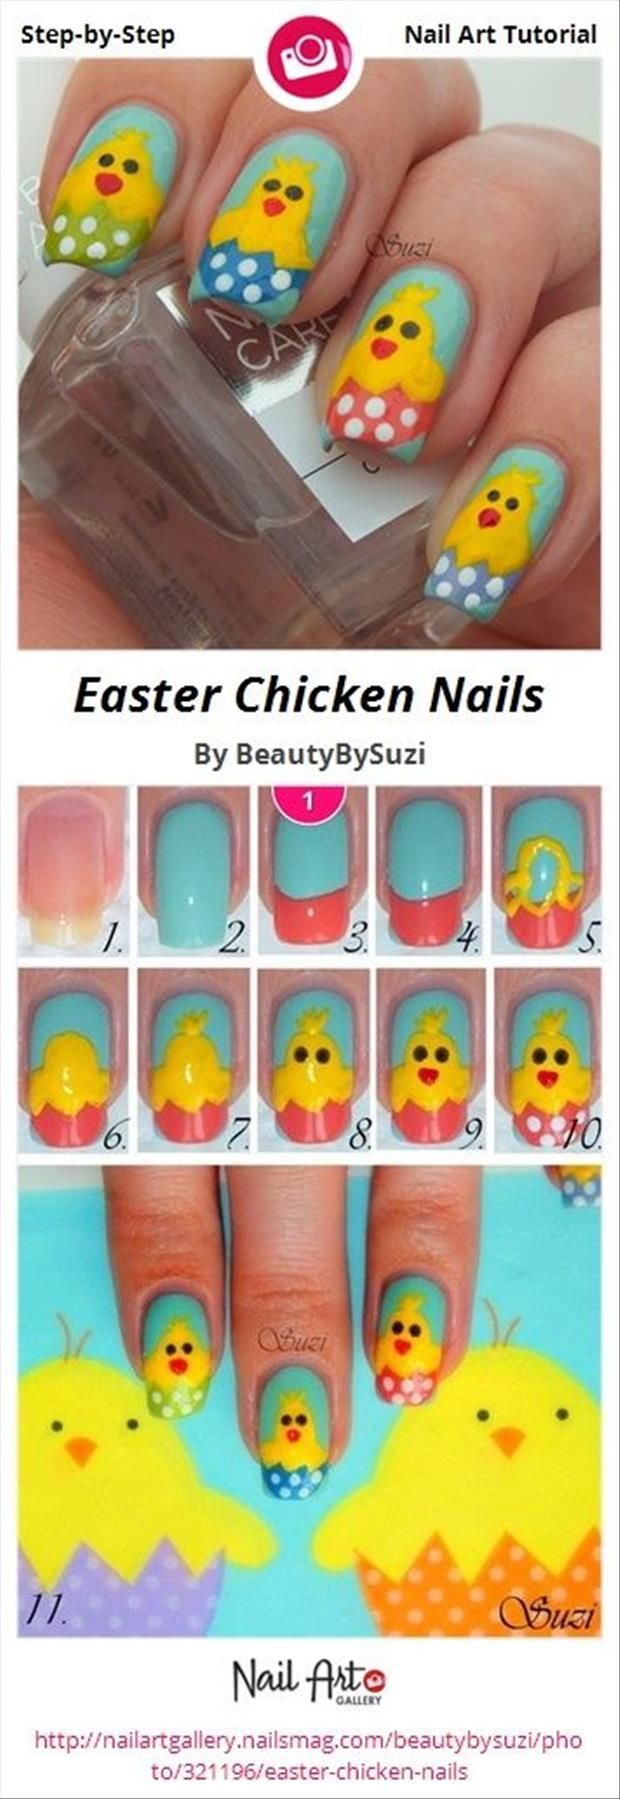 Fun do it yourself easter crafts 34 pics pinterest easter fun do it yourself easter crafts 34 pics solutioingenieria Images